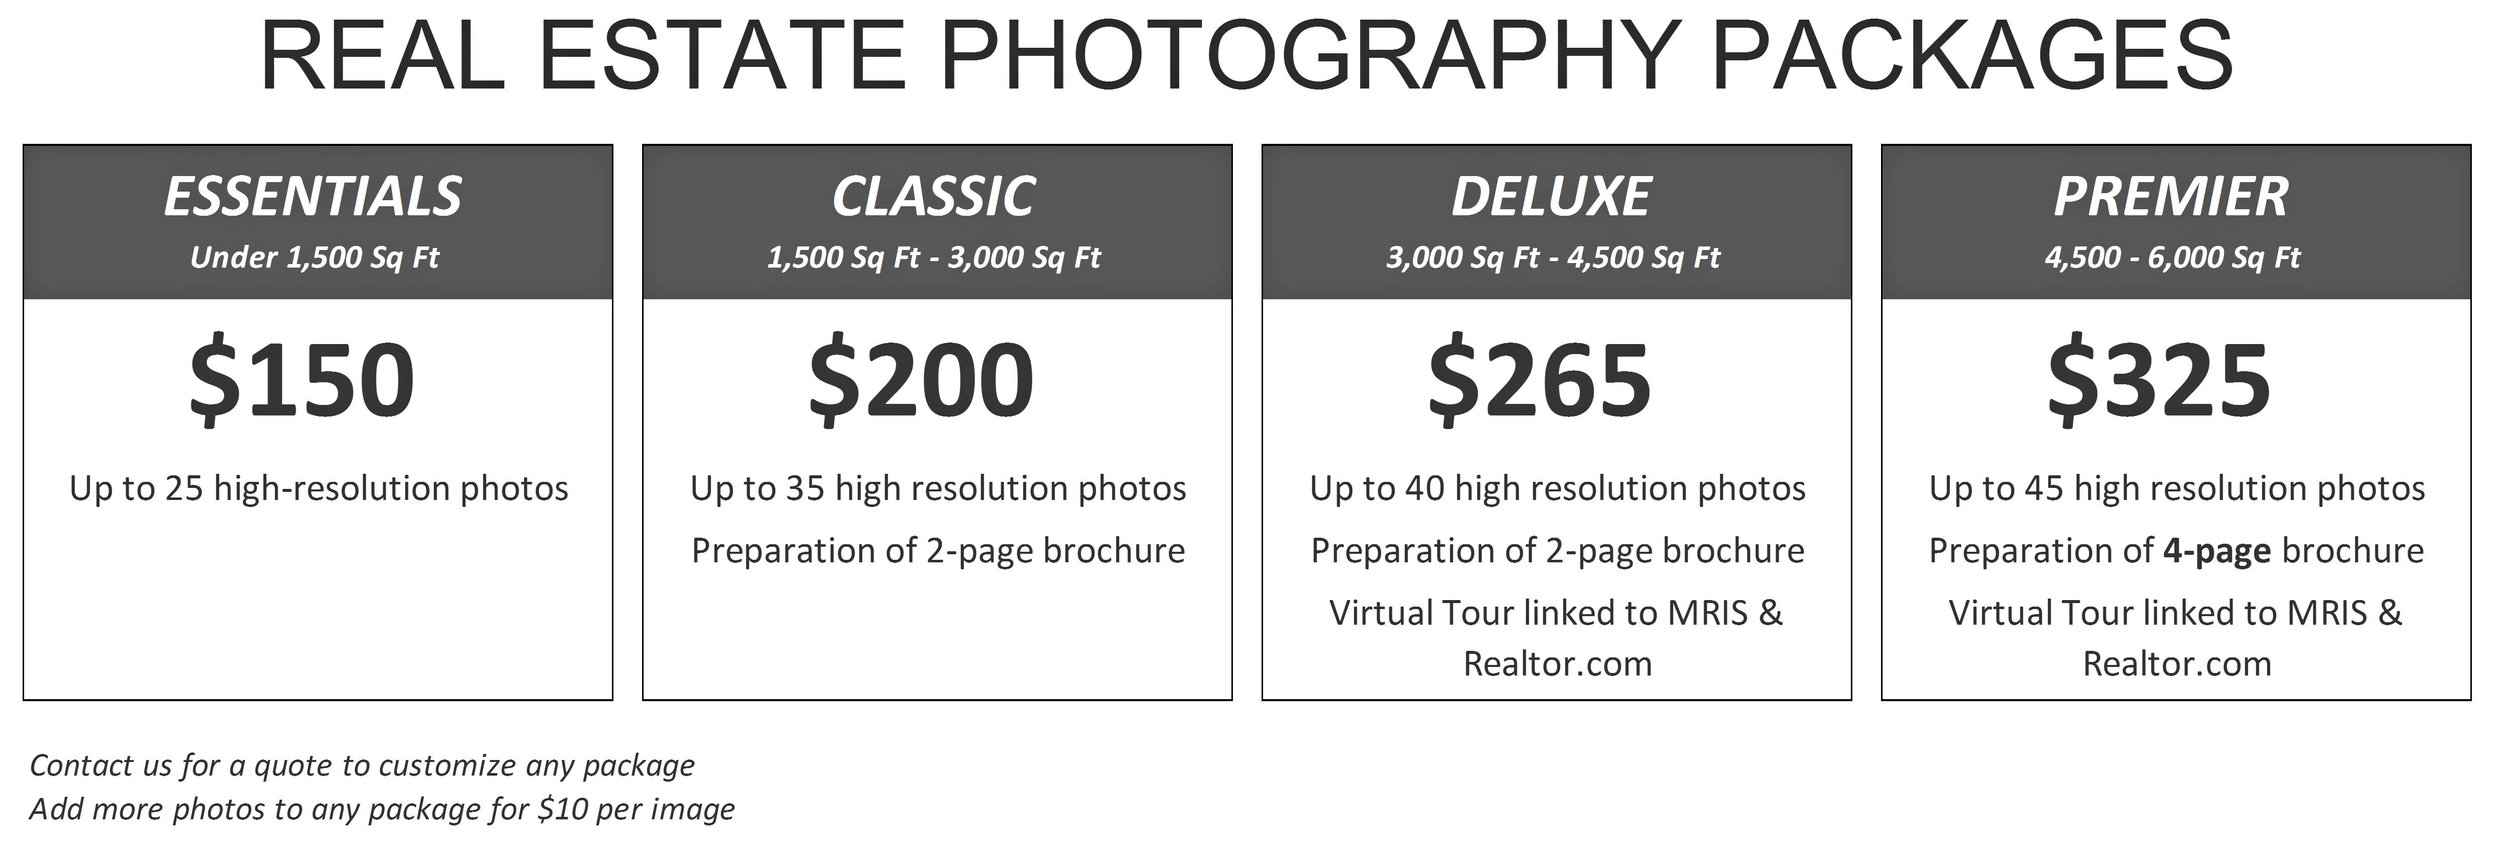 Real Estate Photography Packages and real estate photography prices by robert miller photography